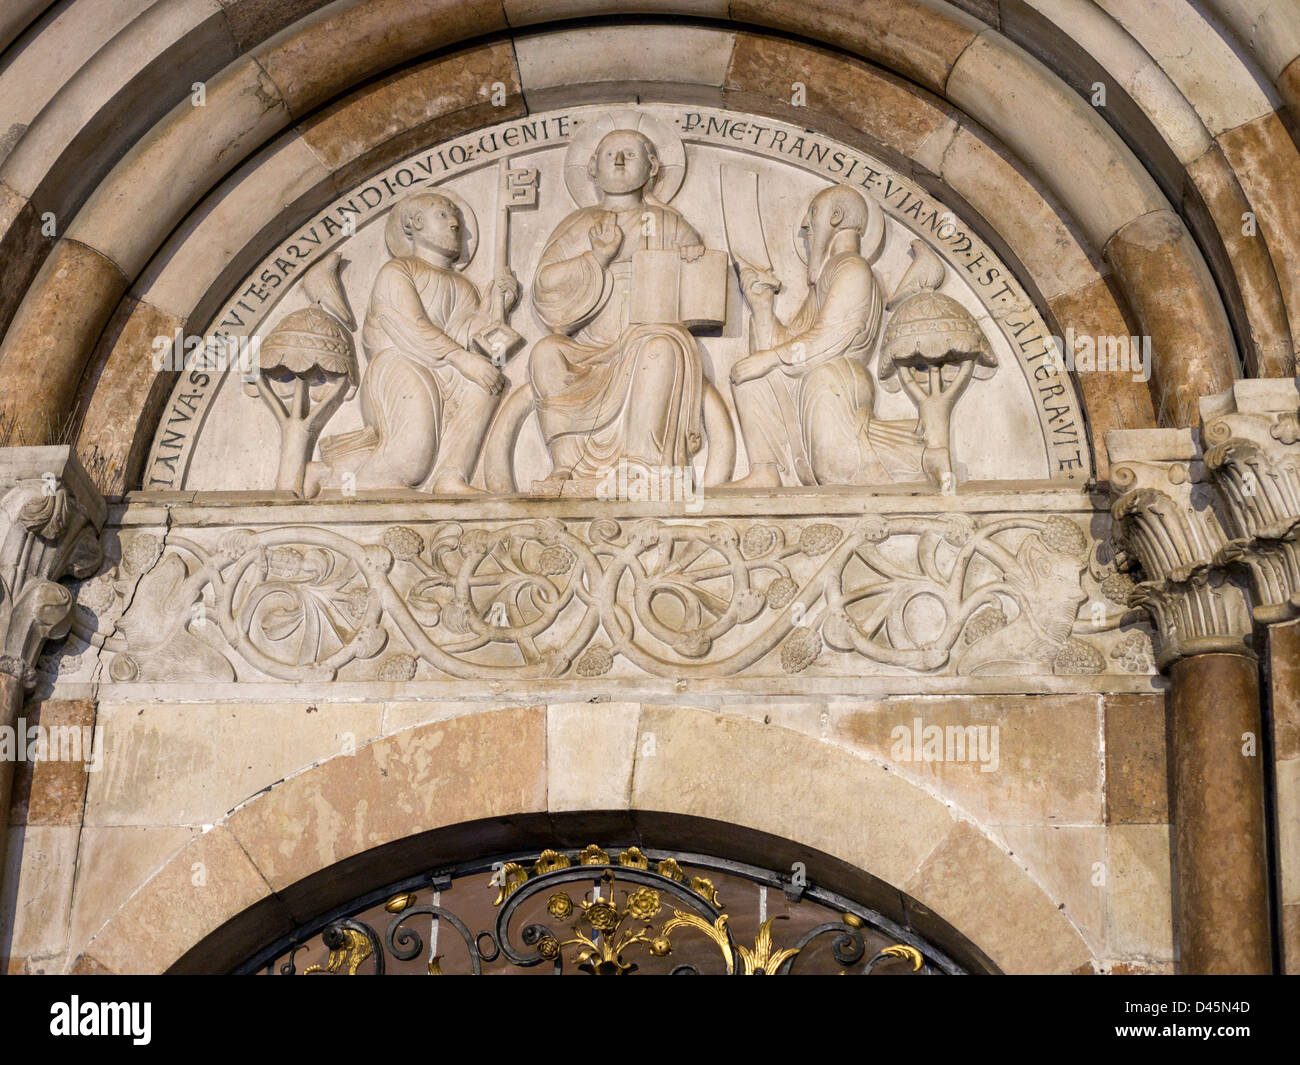 St Peter's tympanum welcome. Above the door a relief showing Jesus with Peter and Paul with a key. - Stock Image